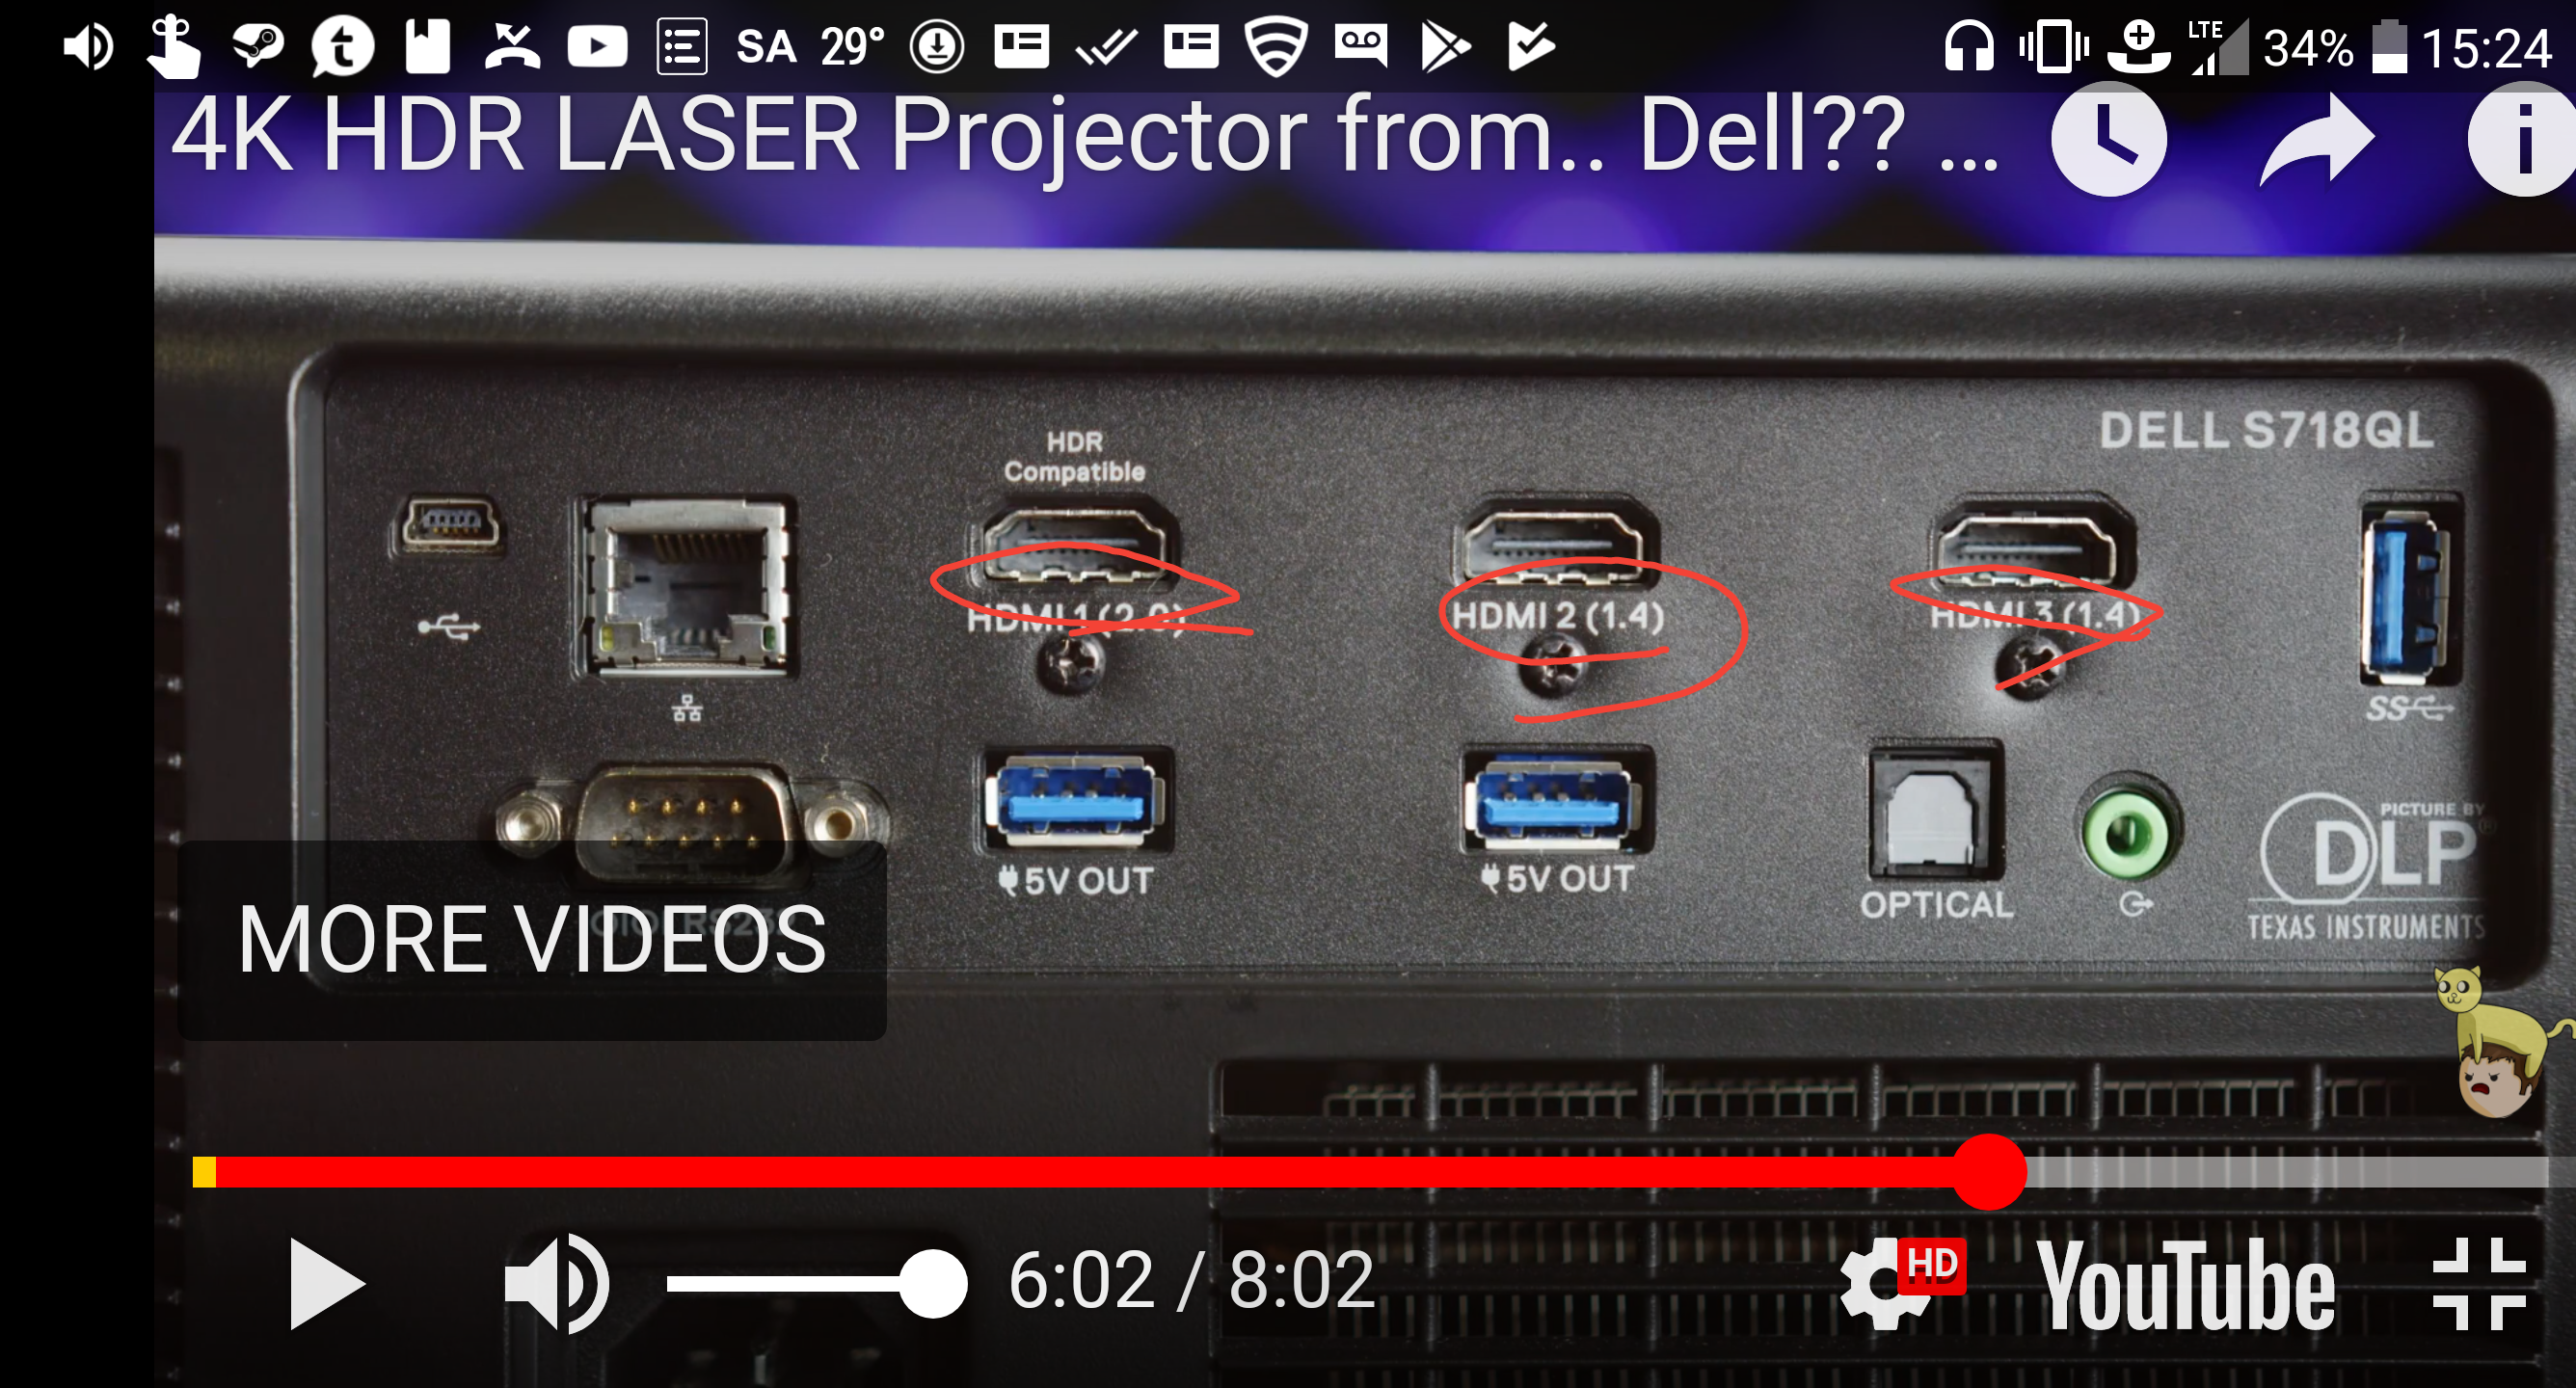 4k Hdr Laser Projector From Dell S718ql Review Ltt